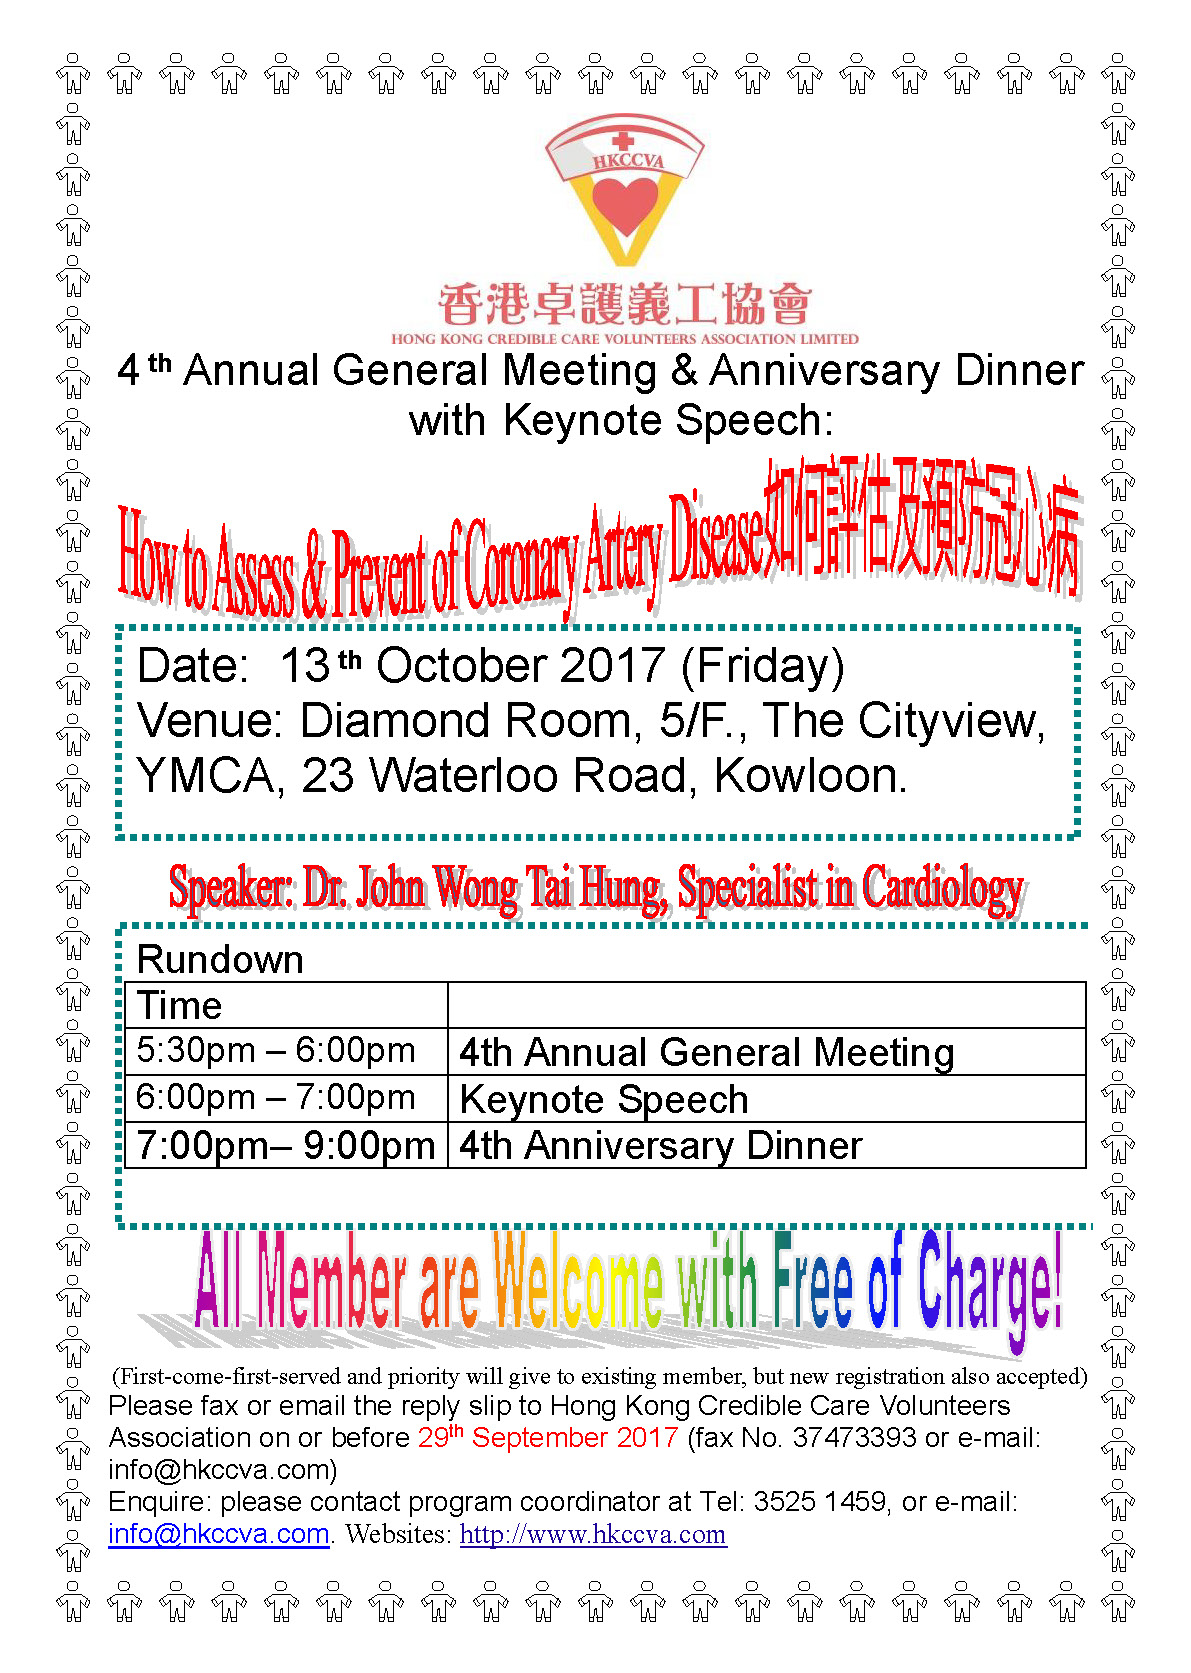 4th Annual General Meeting & Anniversary Dinner with Keynote Speech: How to Assess & Prevent of Coronary Artery Disease